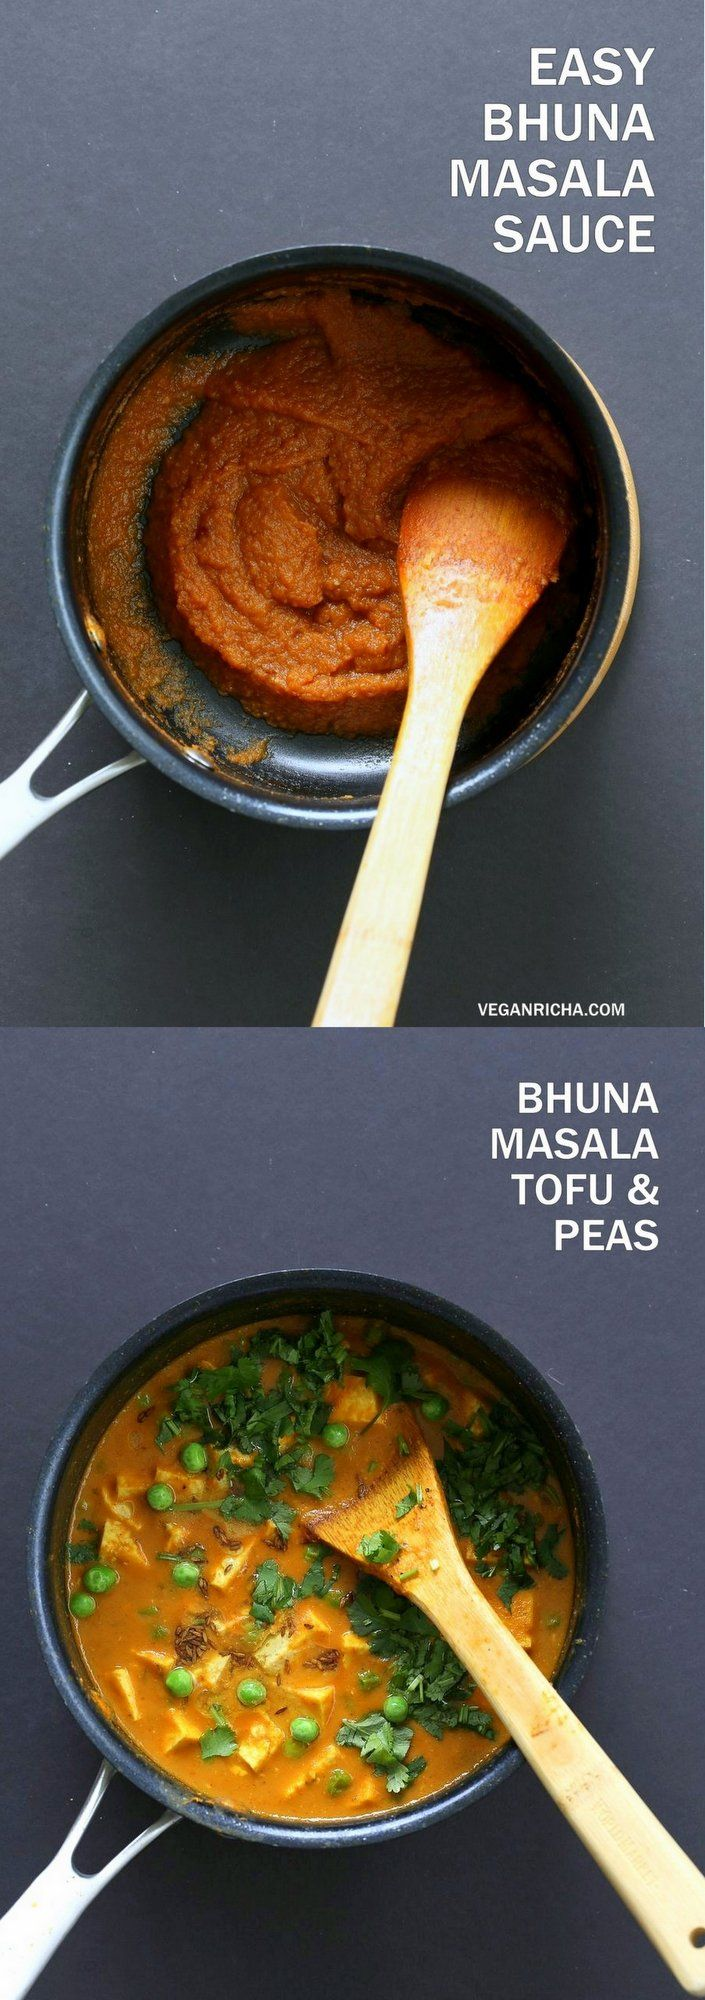 Vegan Bhuna Masala - KK Good but thought it wasn't flavorful enough. I'd add twice as much paste per volume of dairy substitute. Probably also add an extra hot pepper and more spices